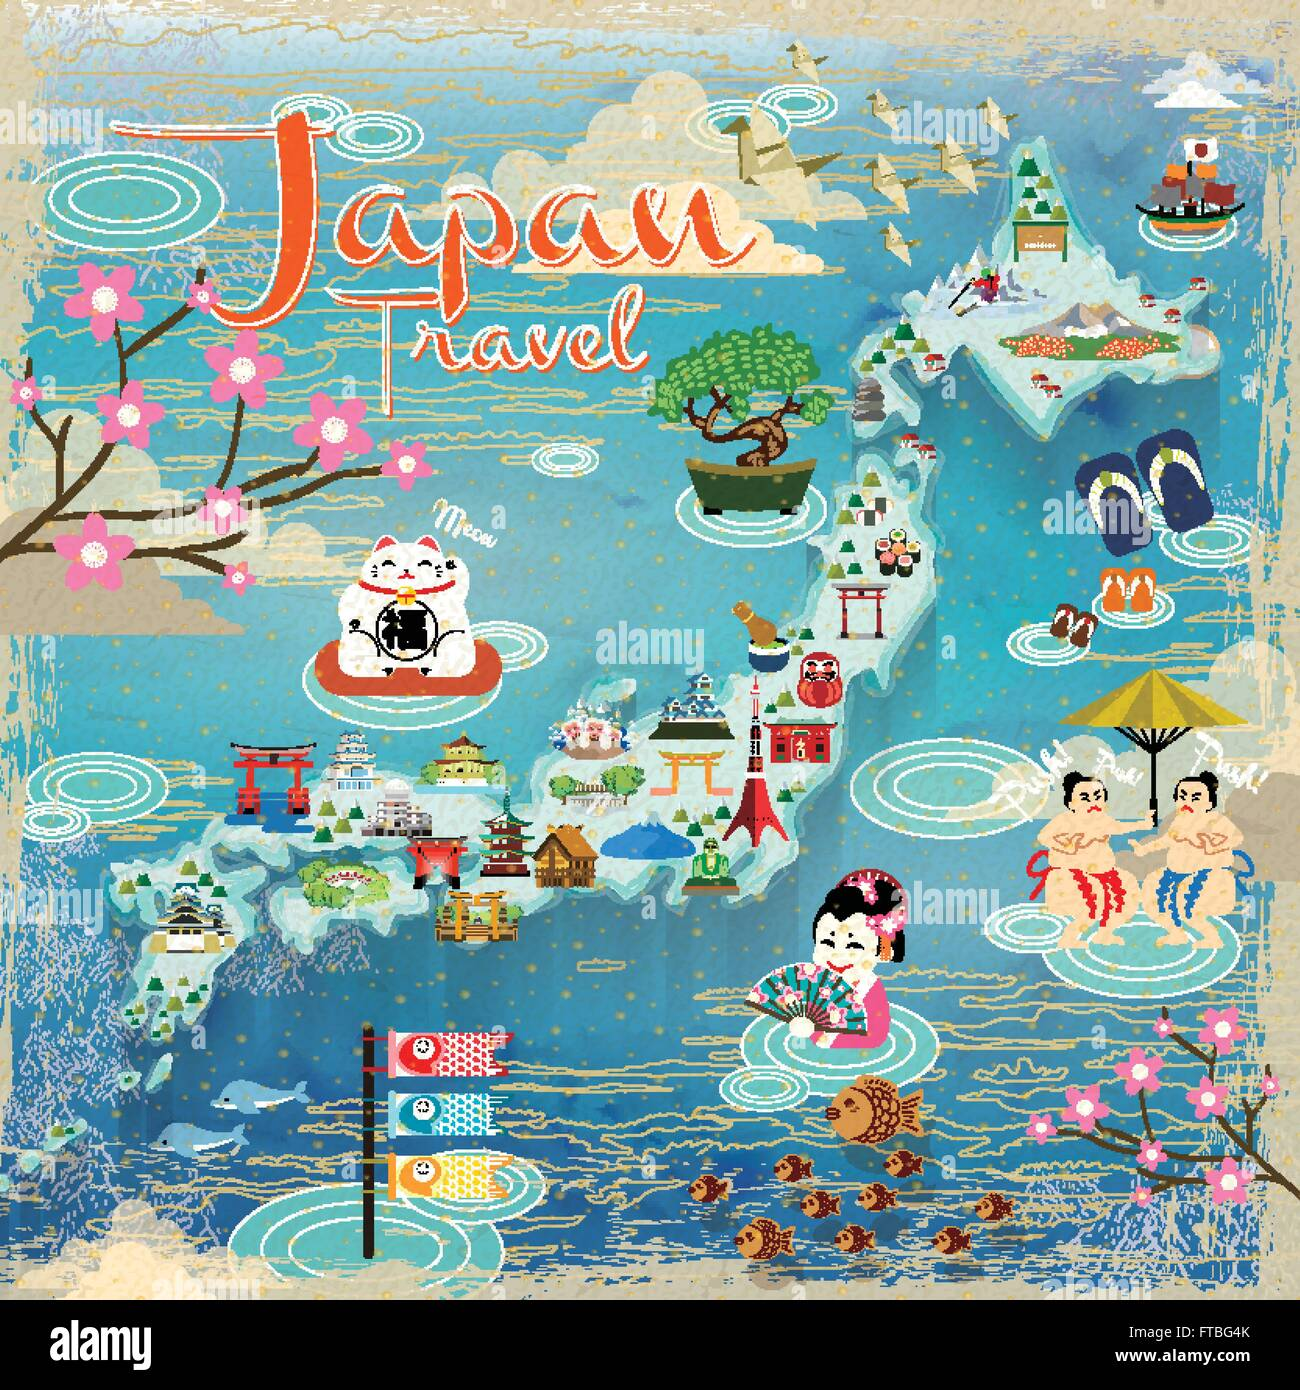 Japan Travel Map With Lovely Famous Attractions Stock Vector Art - Japan map vector art